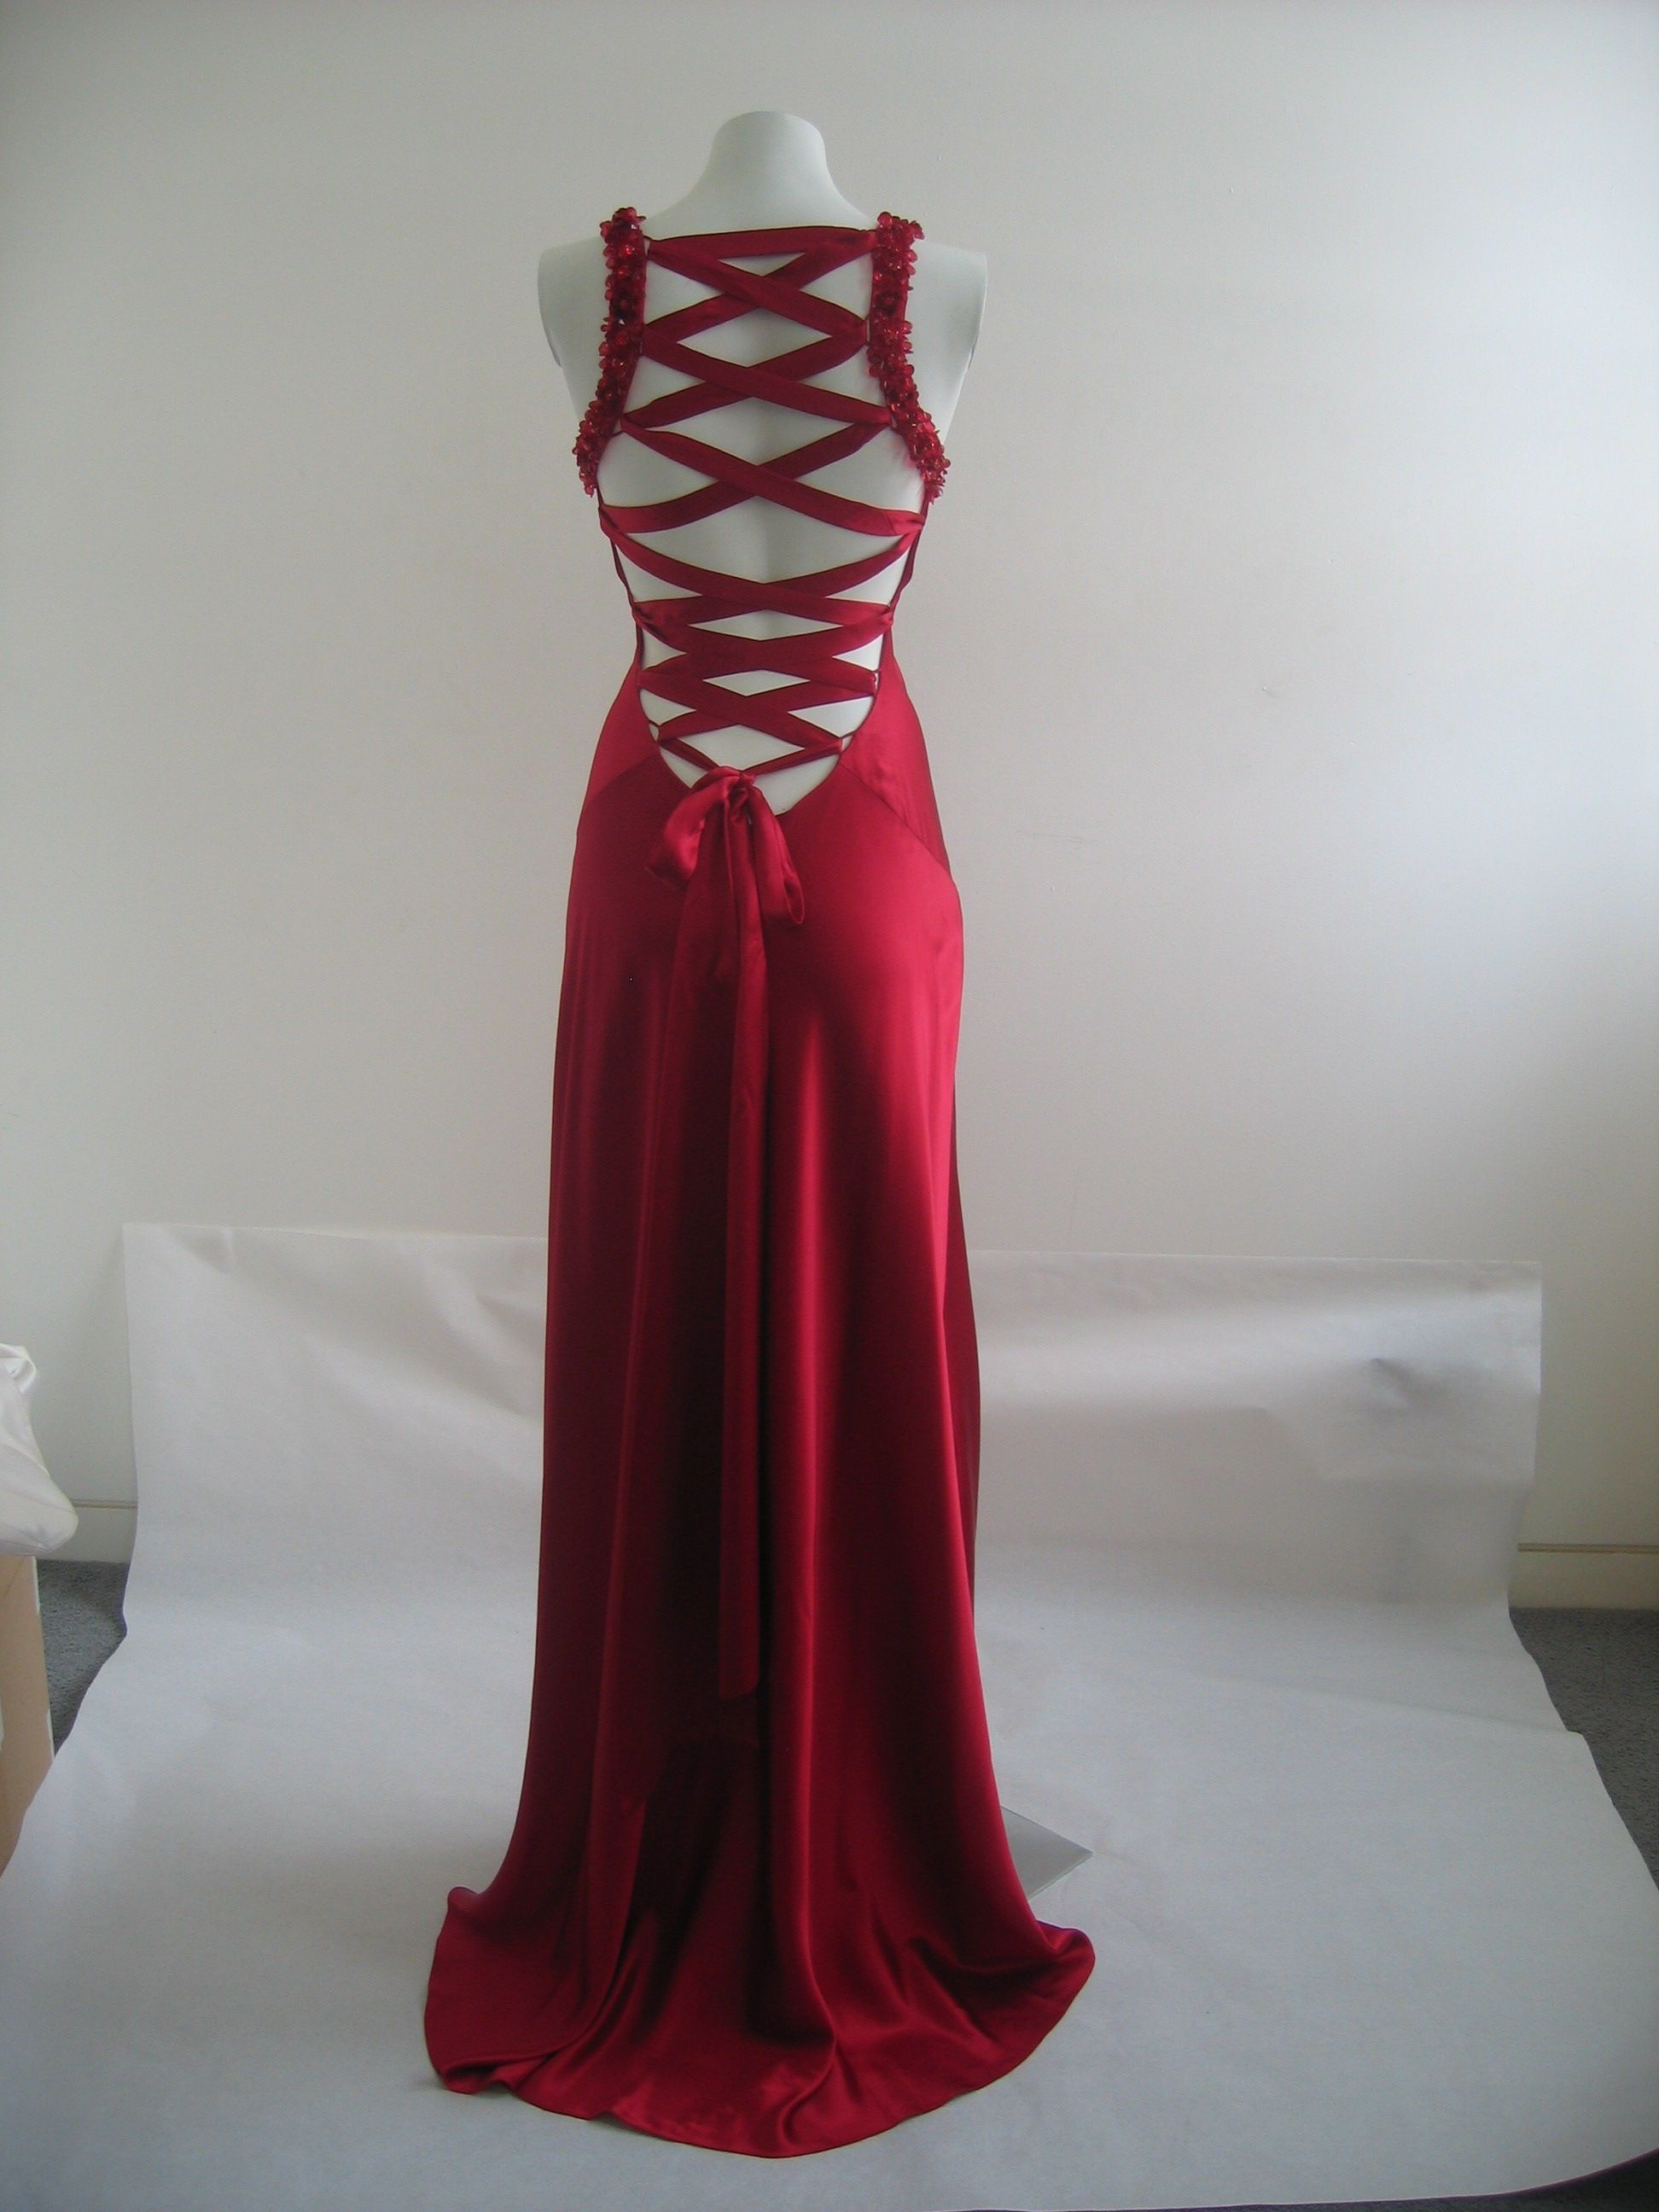 Mottoparty Casino Royal Kleidung The Back Of The Jenny Packham Dress Fabulous You May